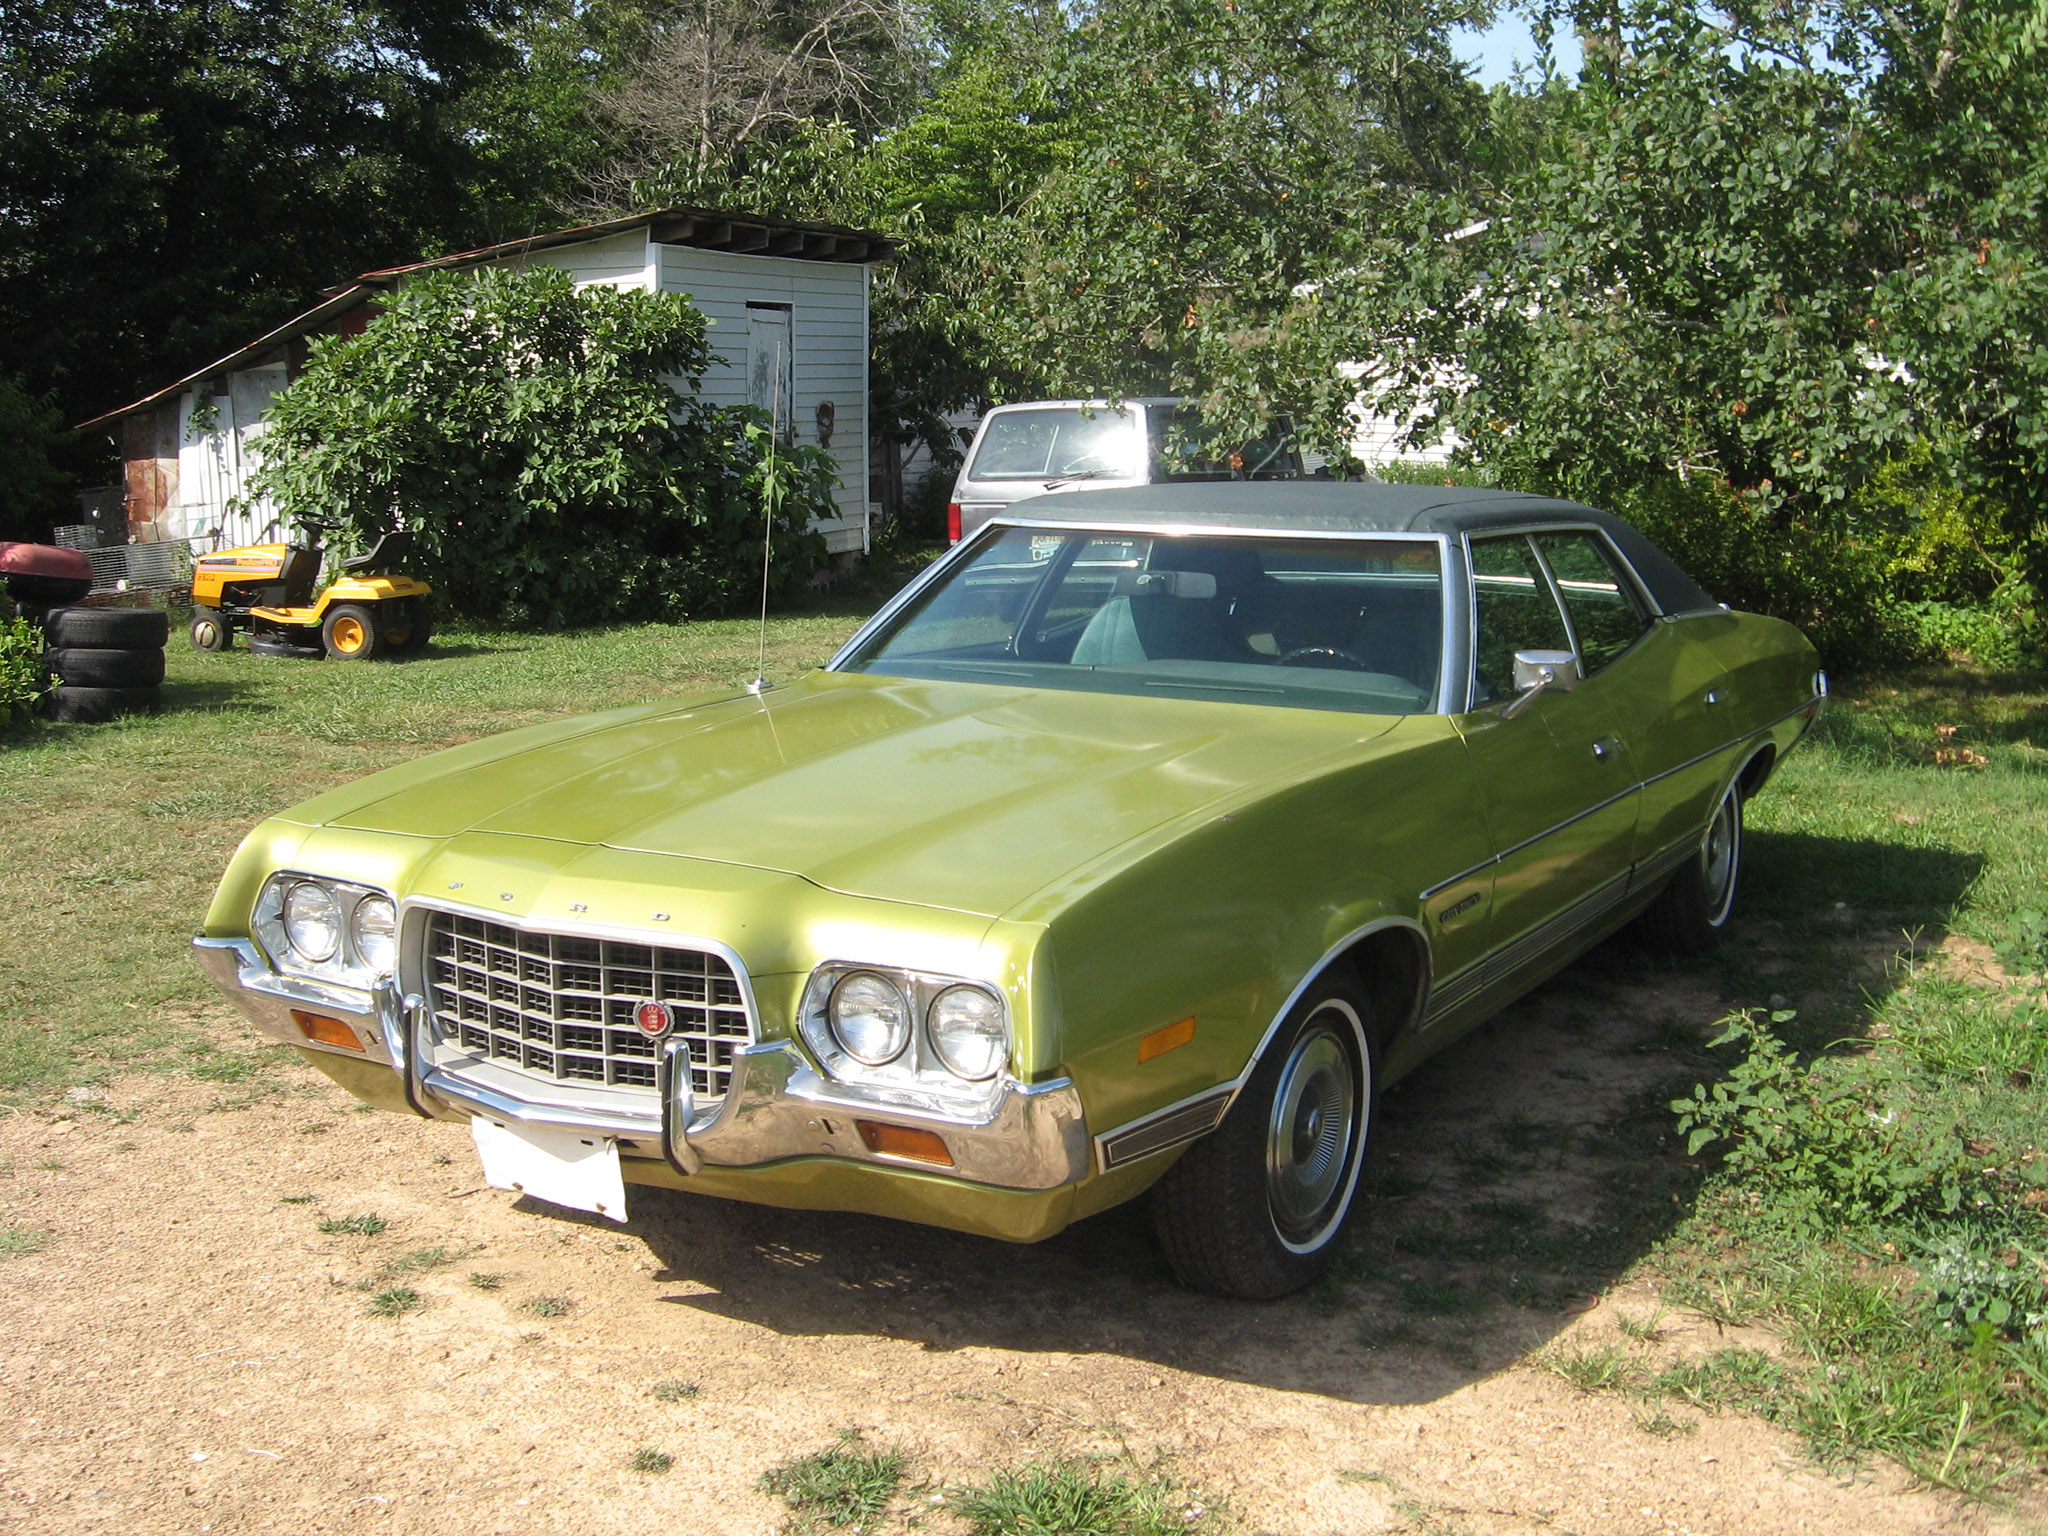 ford gran torino 1973 ford gran torino 1973 photo 03 car in pictures car photo gallery. Black Bedroom Furniture Sets. Home Design Ideas